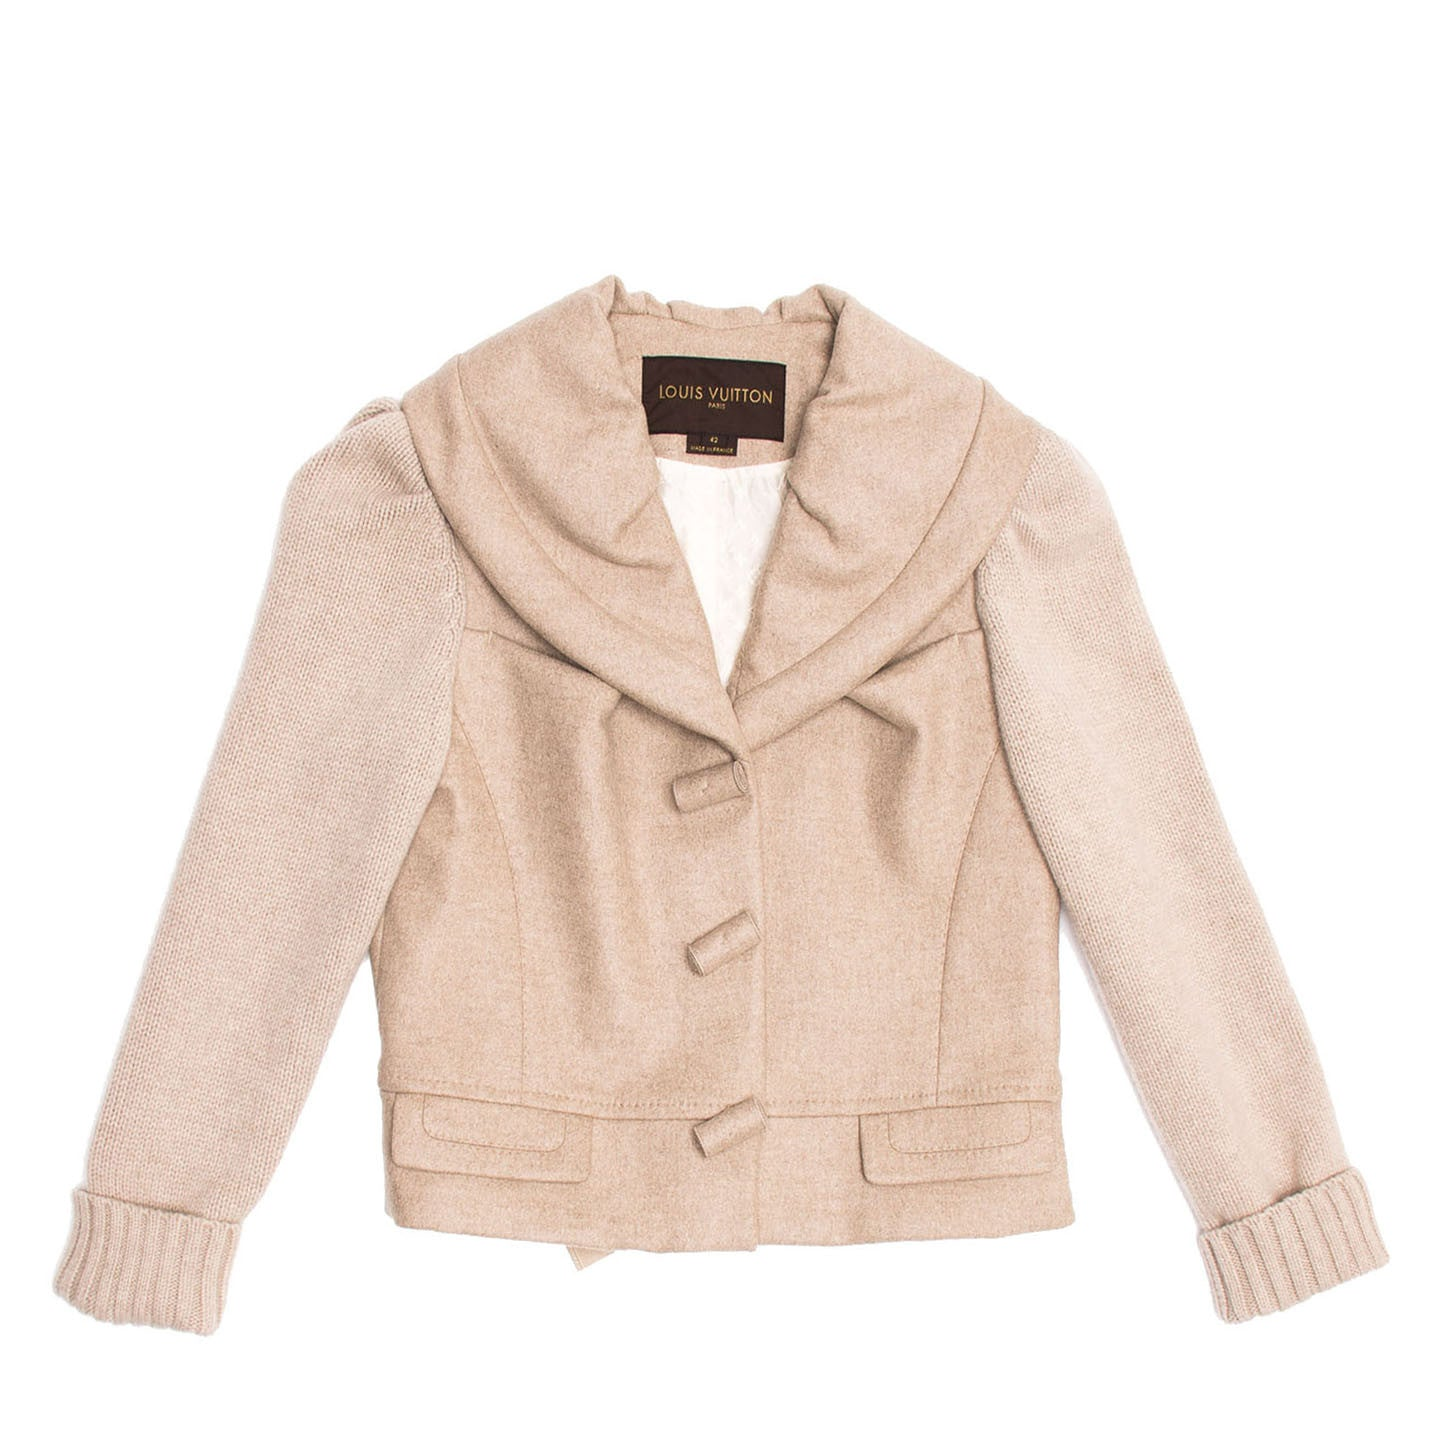 Louis Vuitton Ecru Cashmere Cropped Jacket, Size 42 (French)